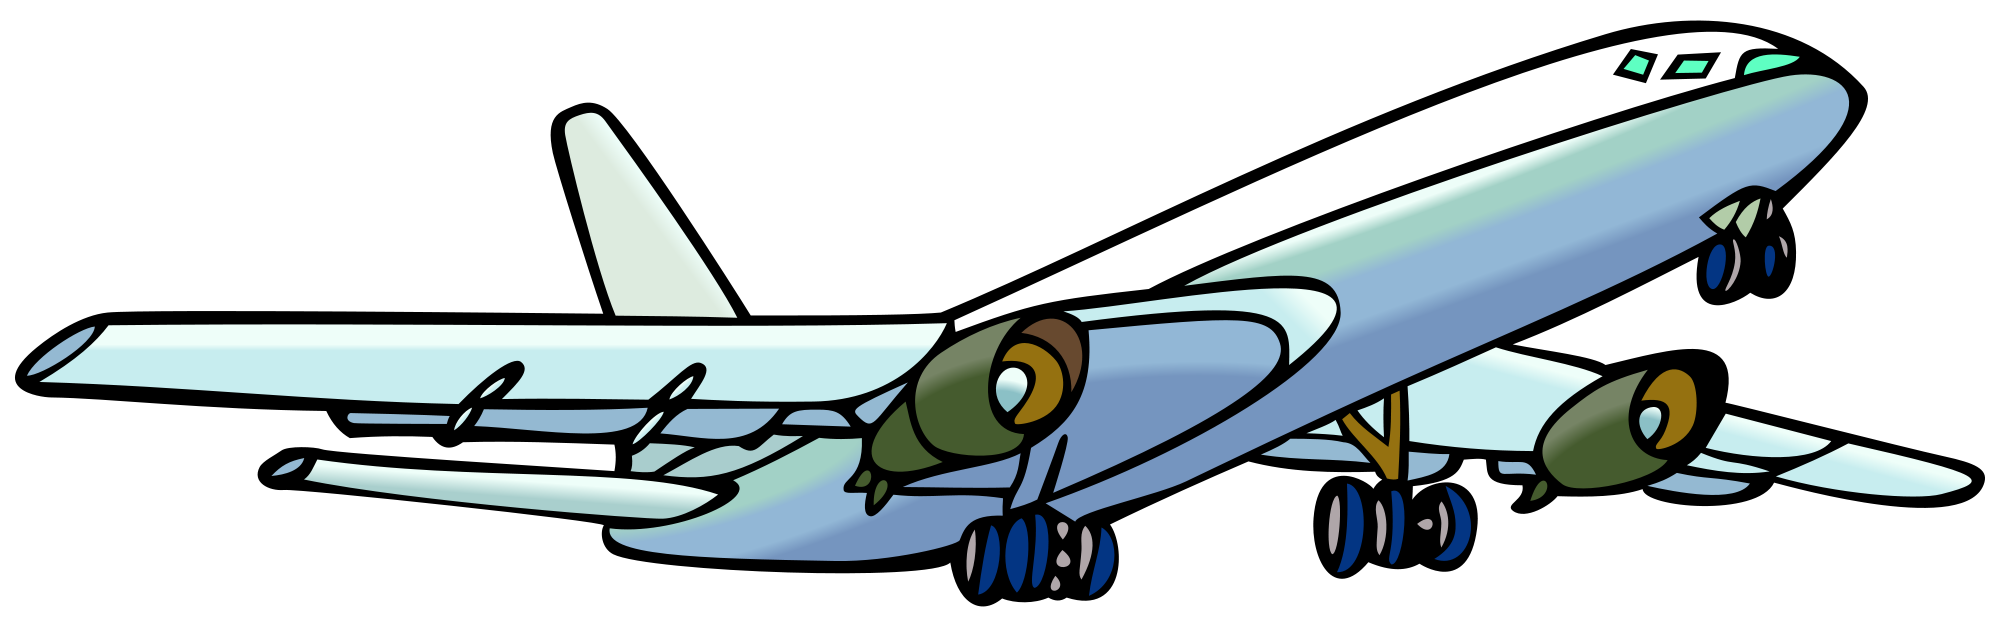 Clipart png airplane. File svg wikimedia commons